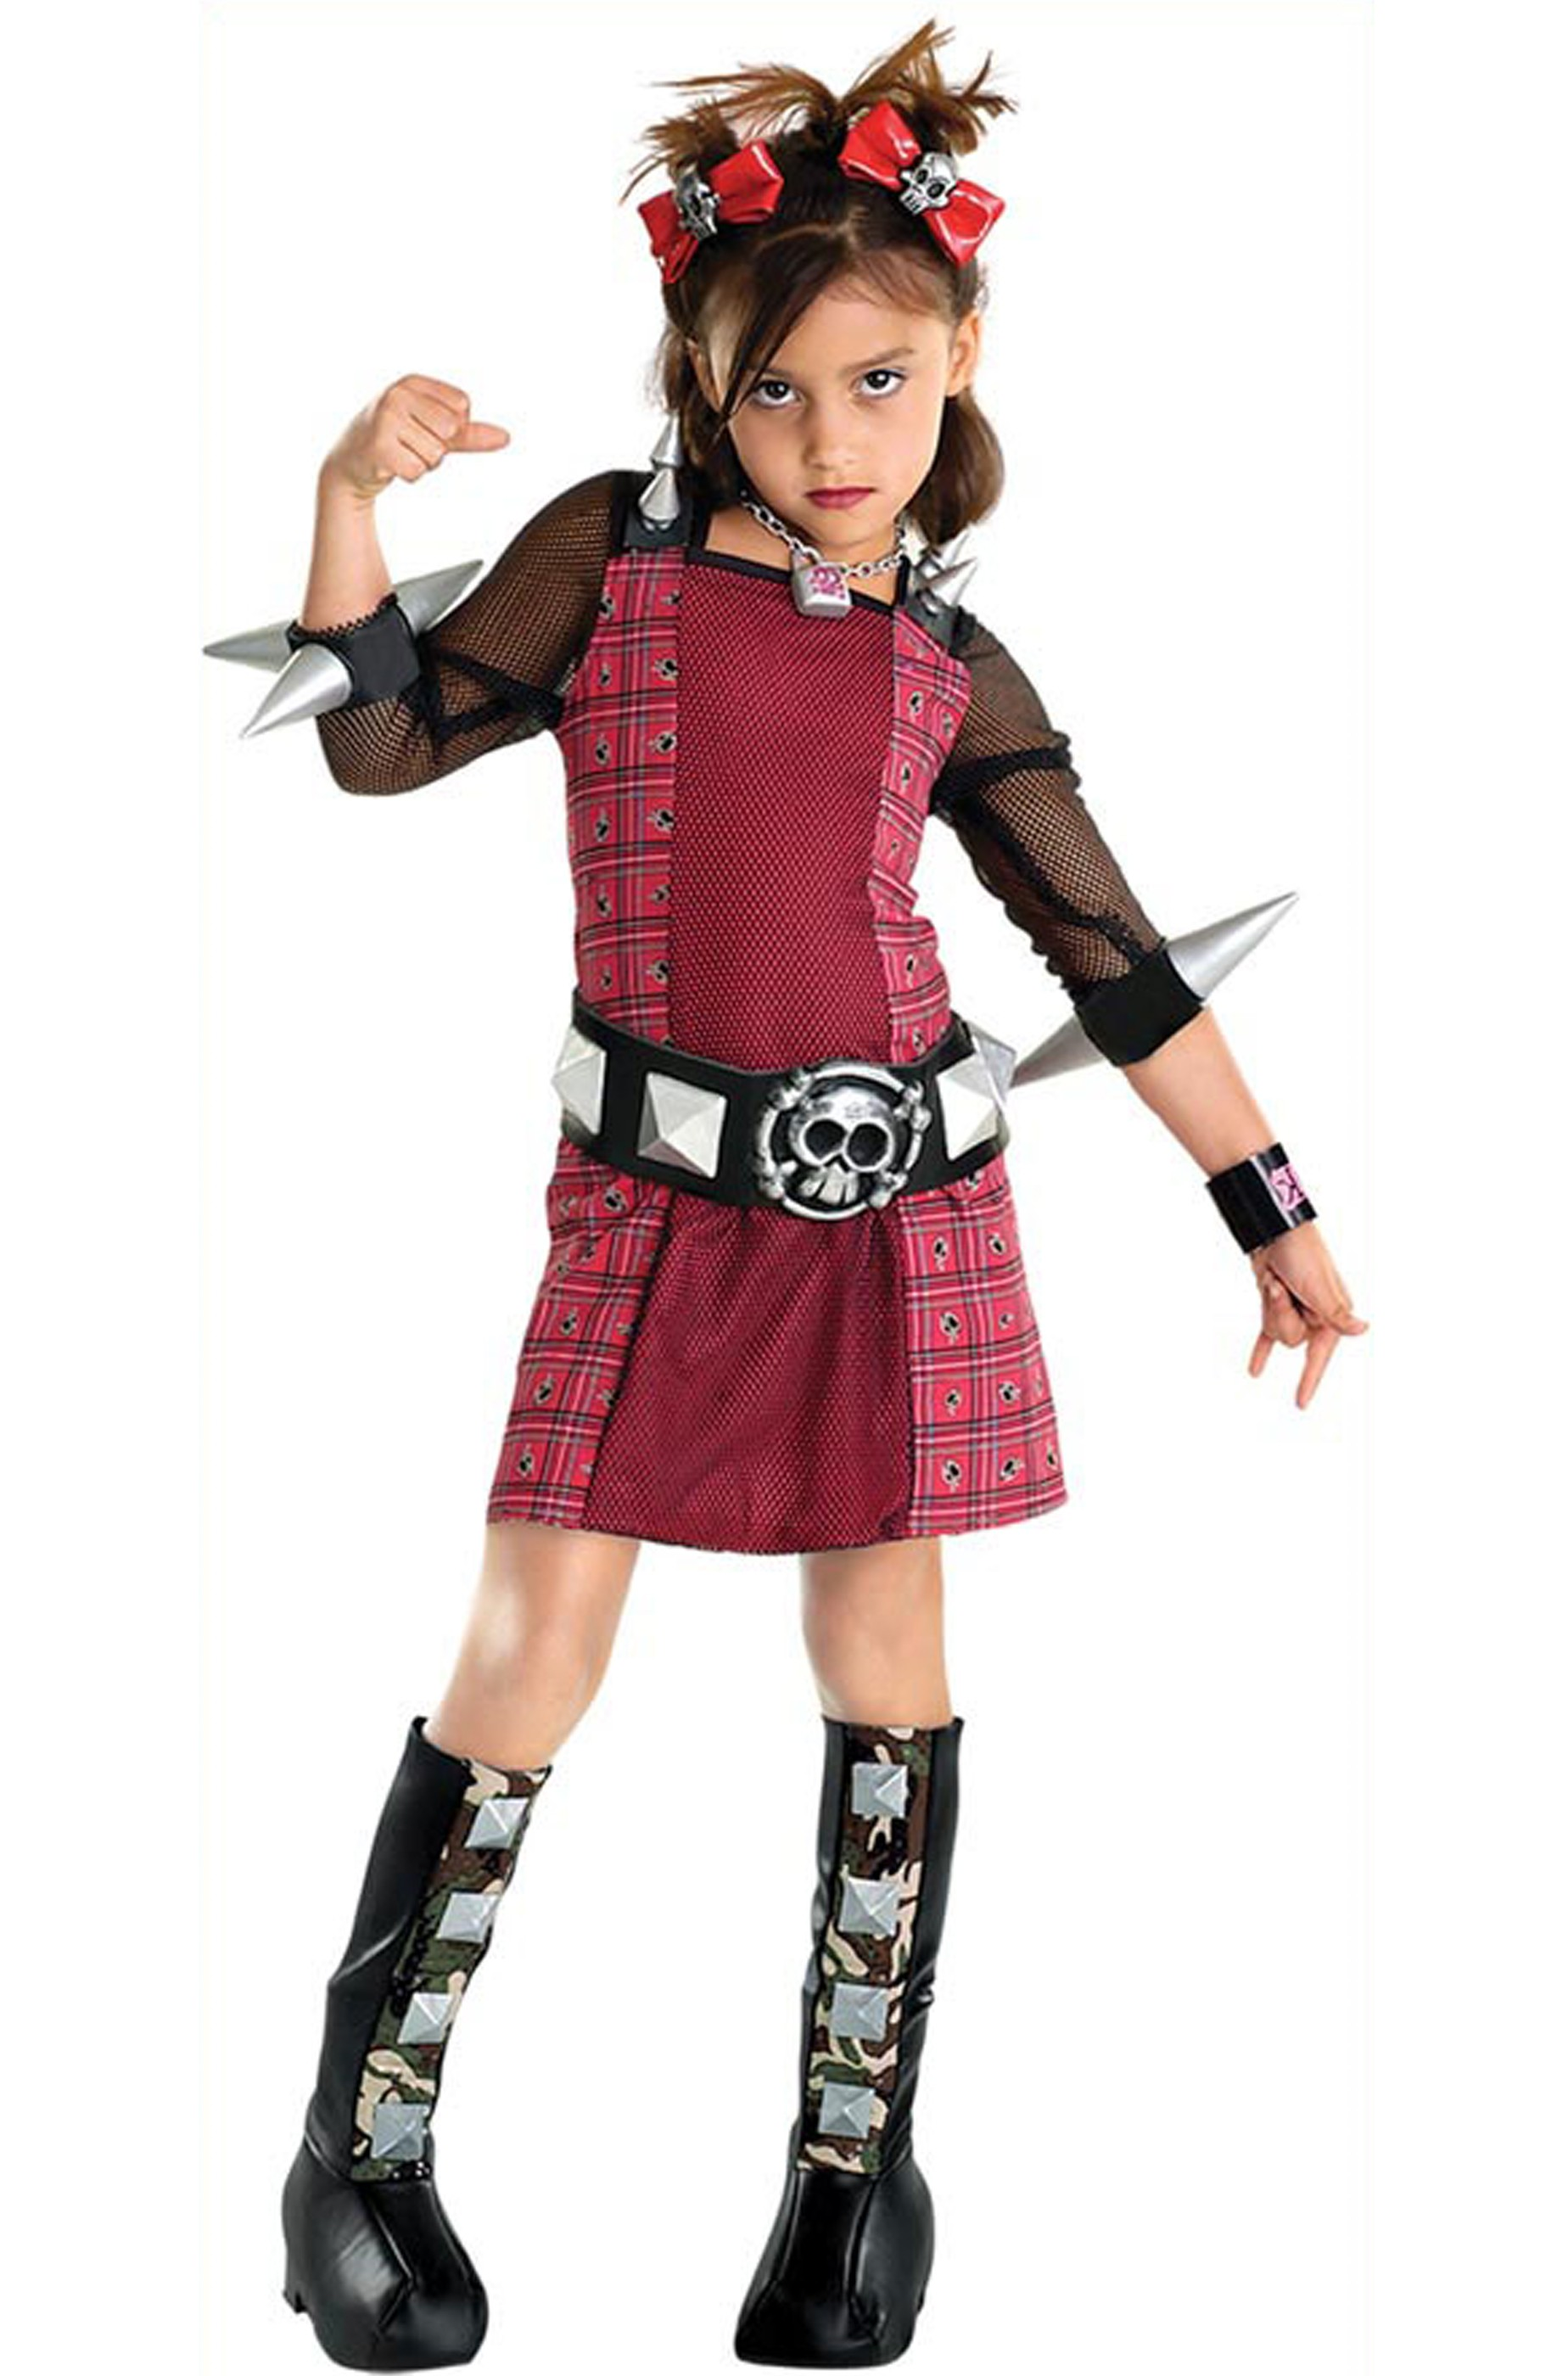 huge selection of 6b30d 99f1f Costume carnevale Bambina Ragazza Punk